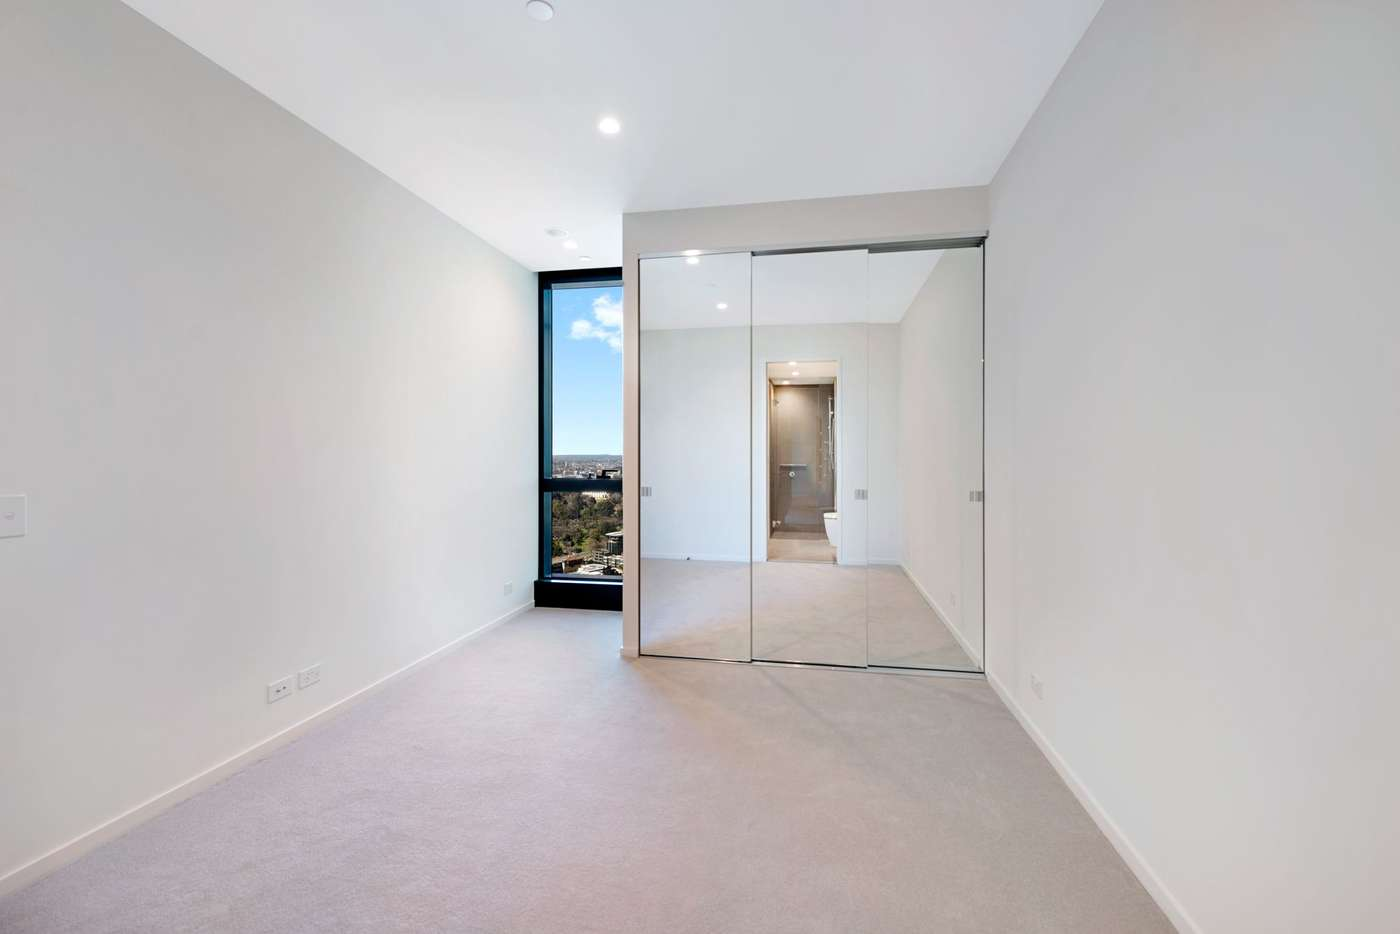 Seventh view of Homely apartment listing, 3708/70 Southbank Boulevard, Southbank VIC 3006